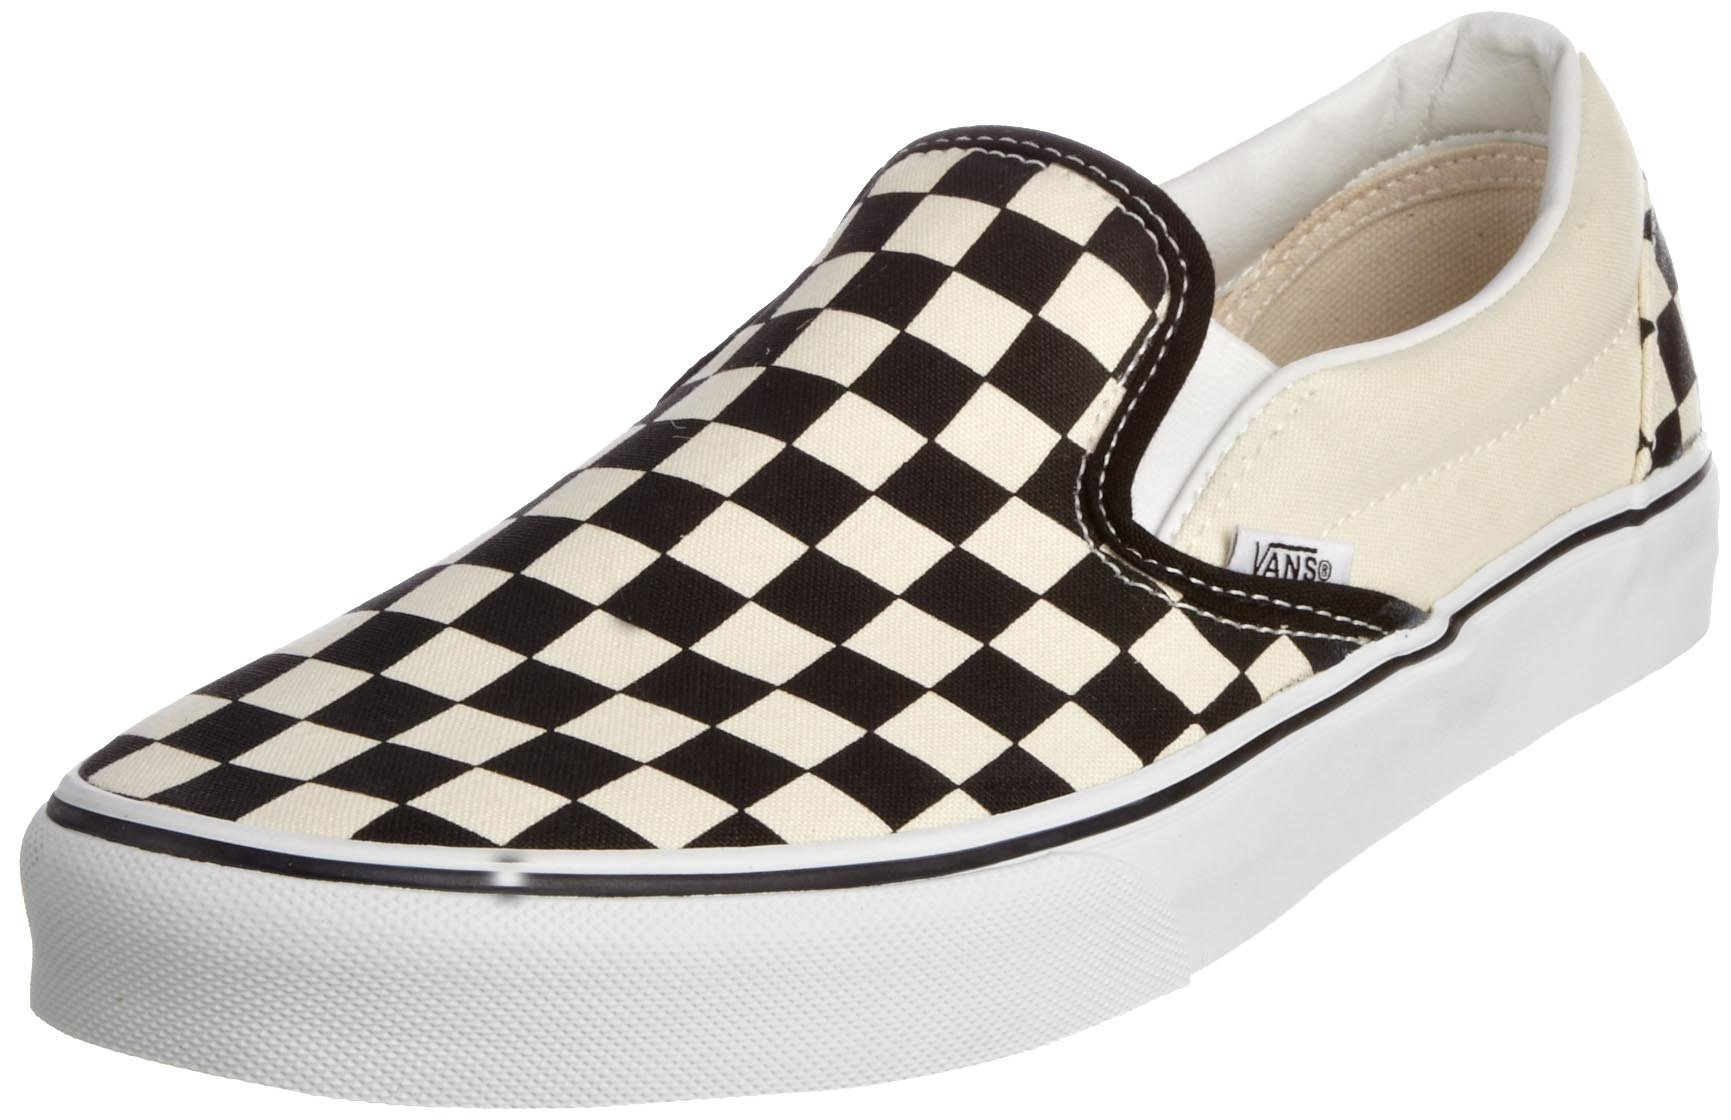 Vans Unisex Classic Slip-On (Checkerboard) Blk&whtchckerboard/Wht Skate Shoe 11 Men US